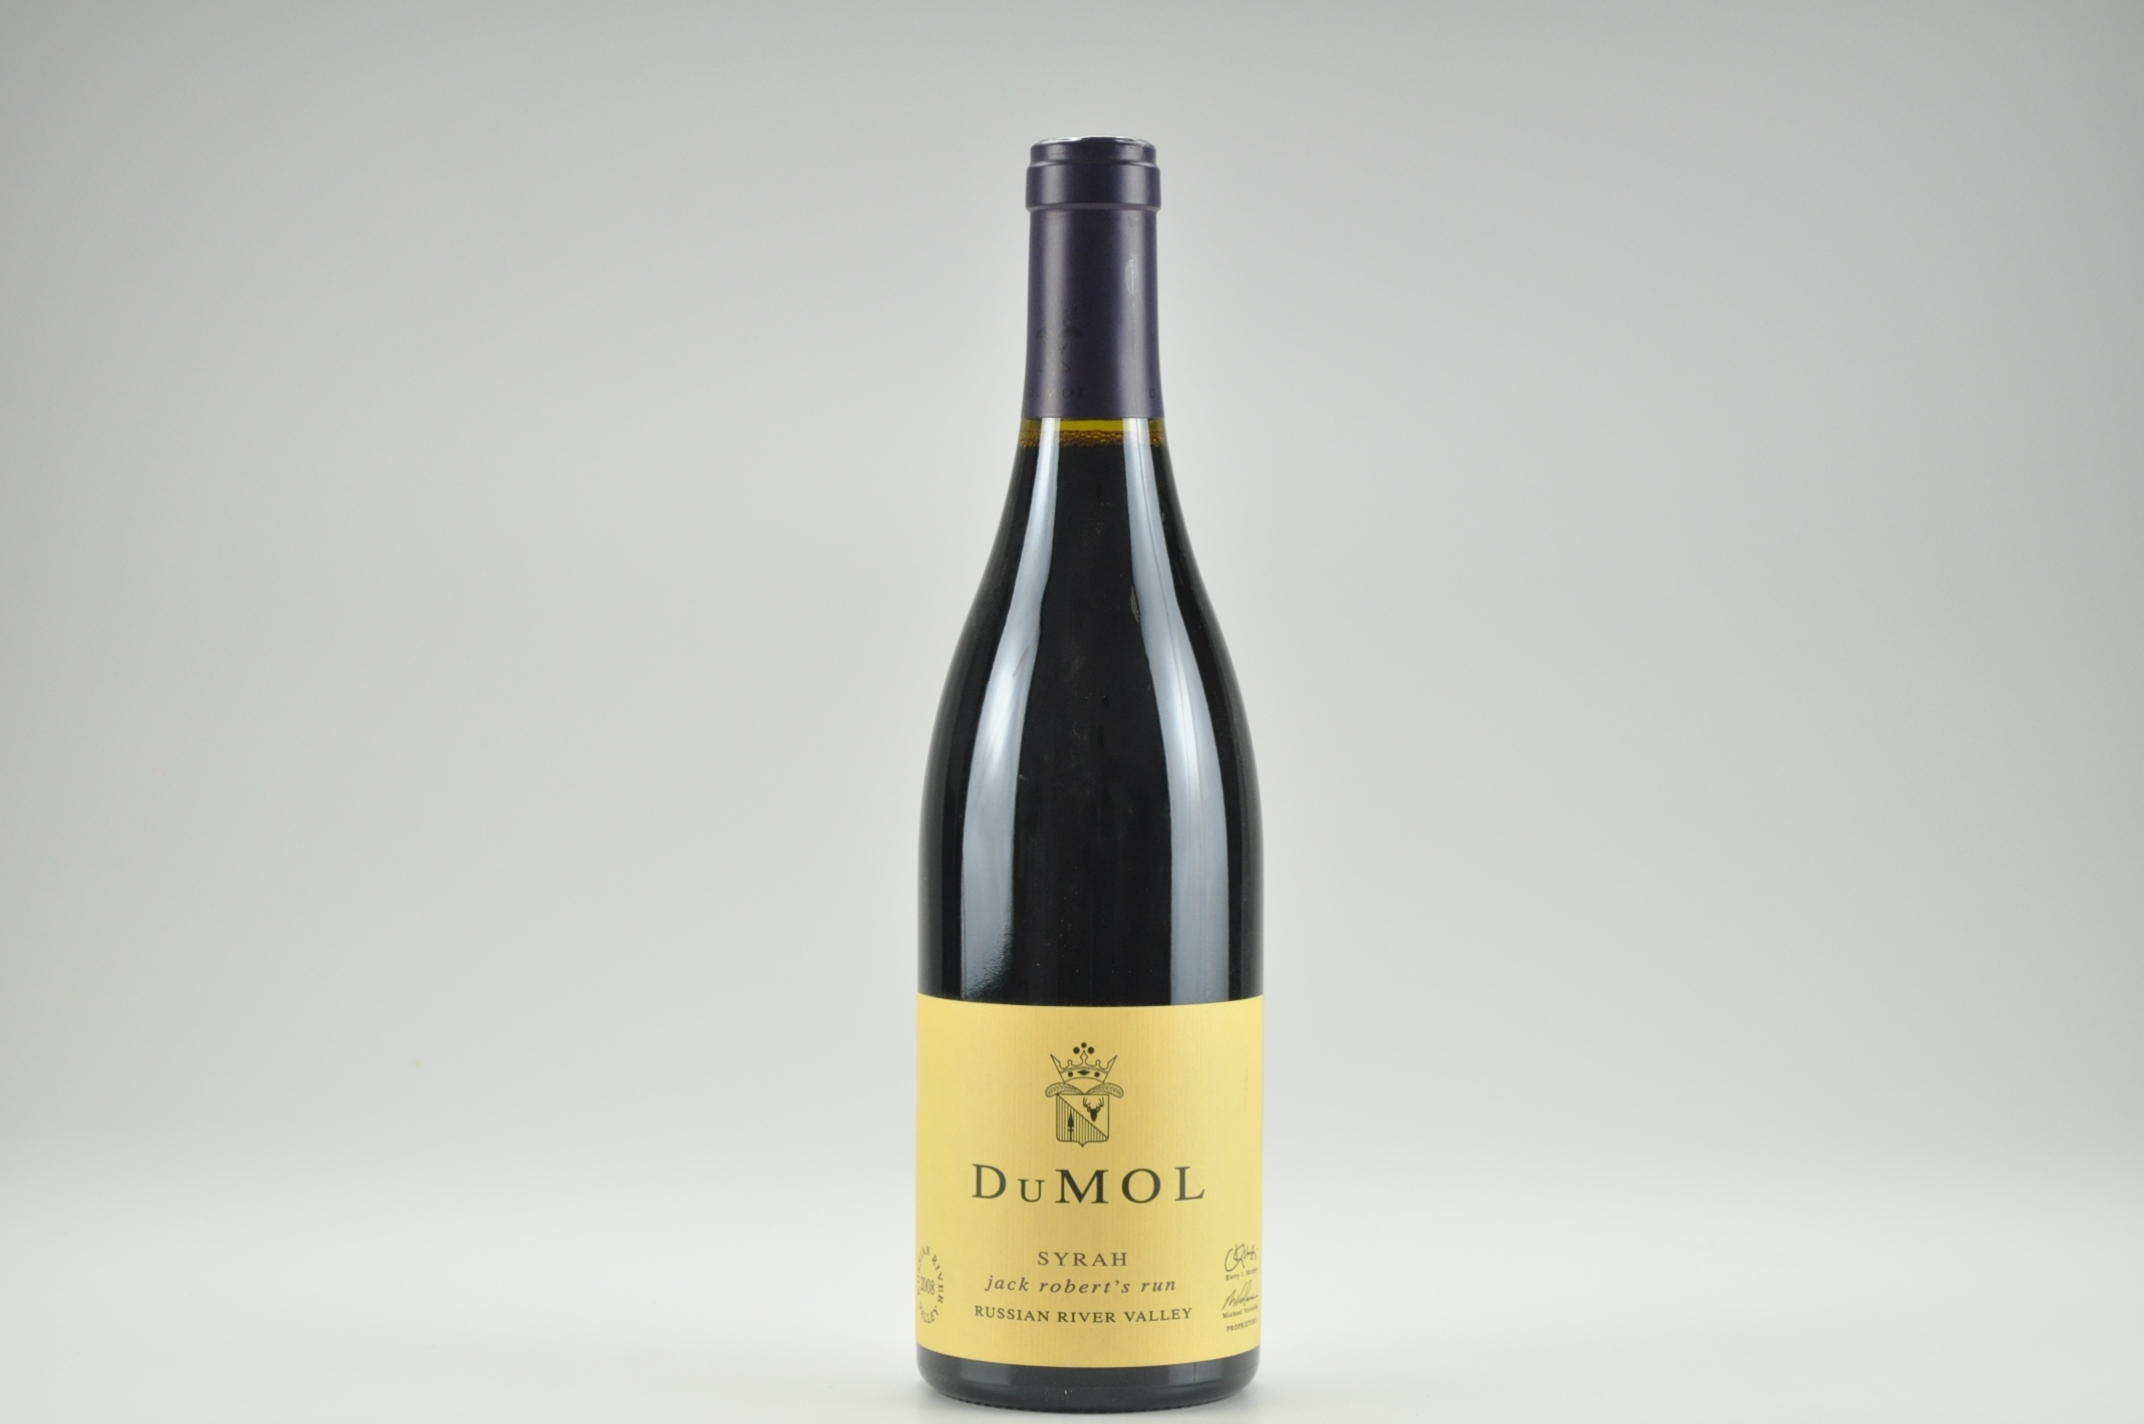 2008 DuMOL Syrah Jack Robert's Run, Russian River Valley RP--93